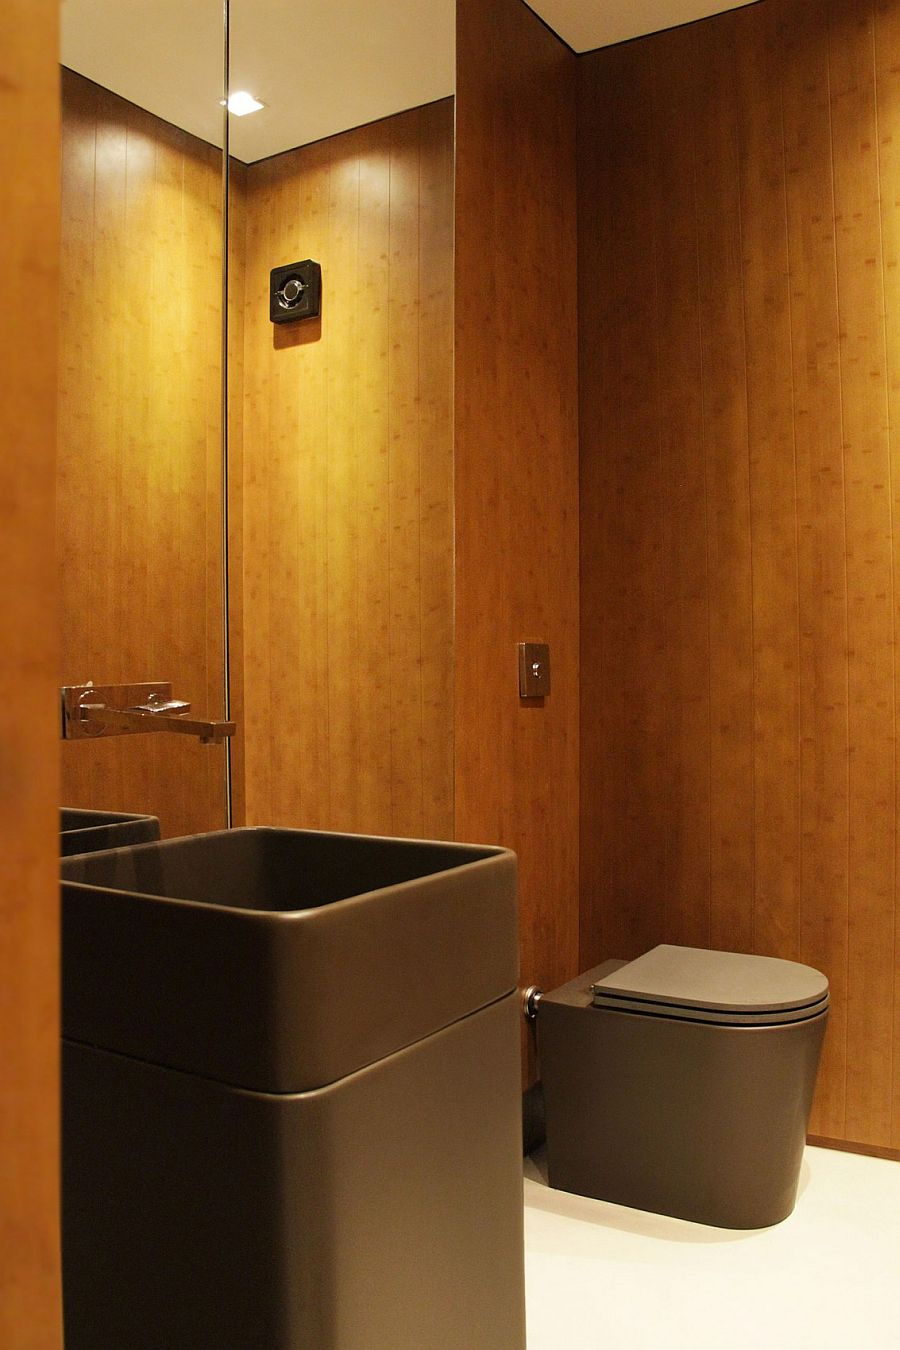 Small modern powder room deisgn with walls clad in wood